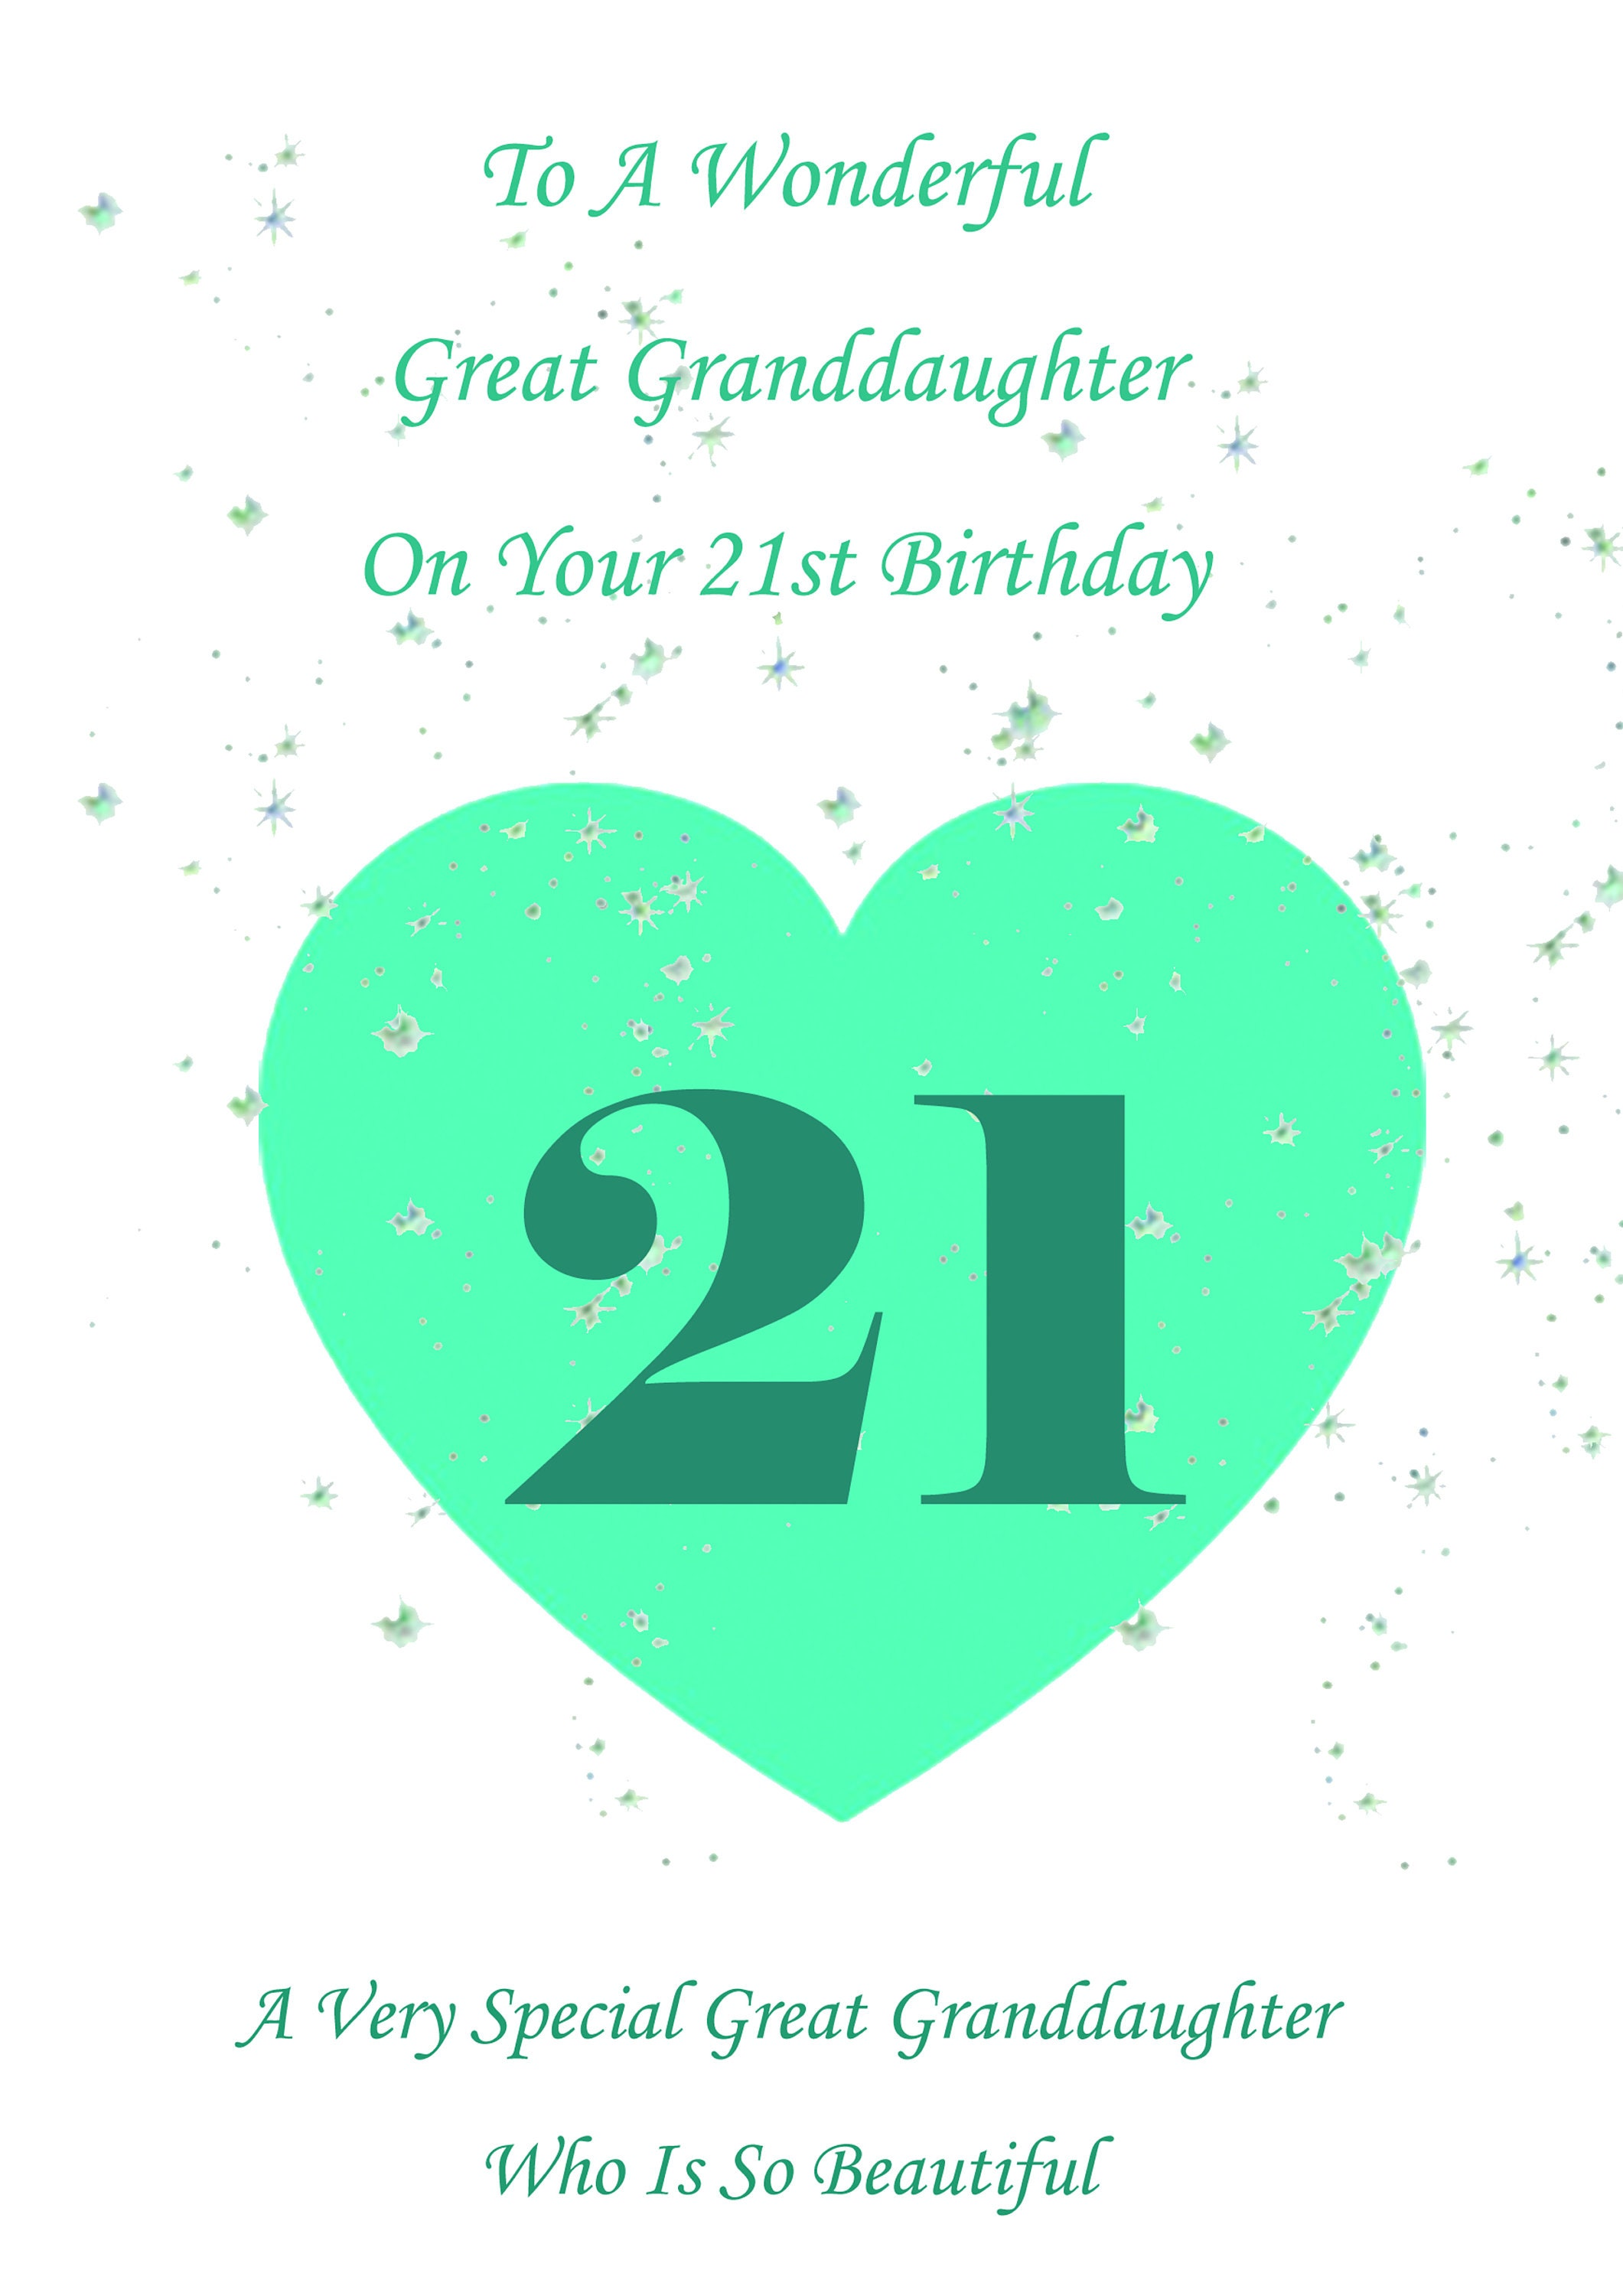 Great Granddaughter 21st Birthday Card